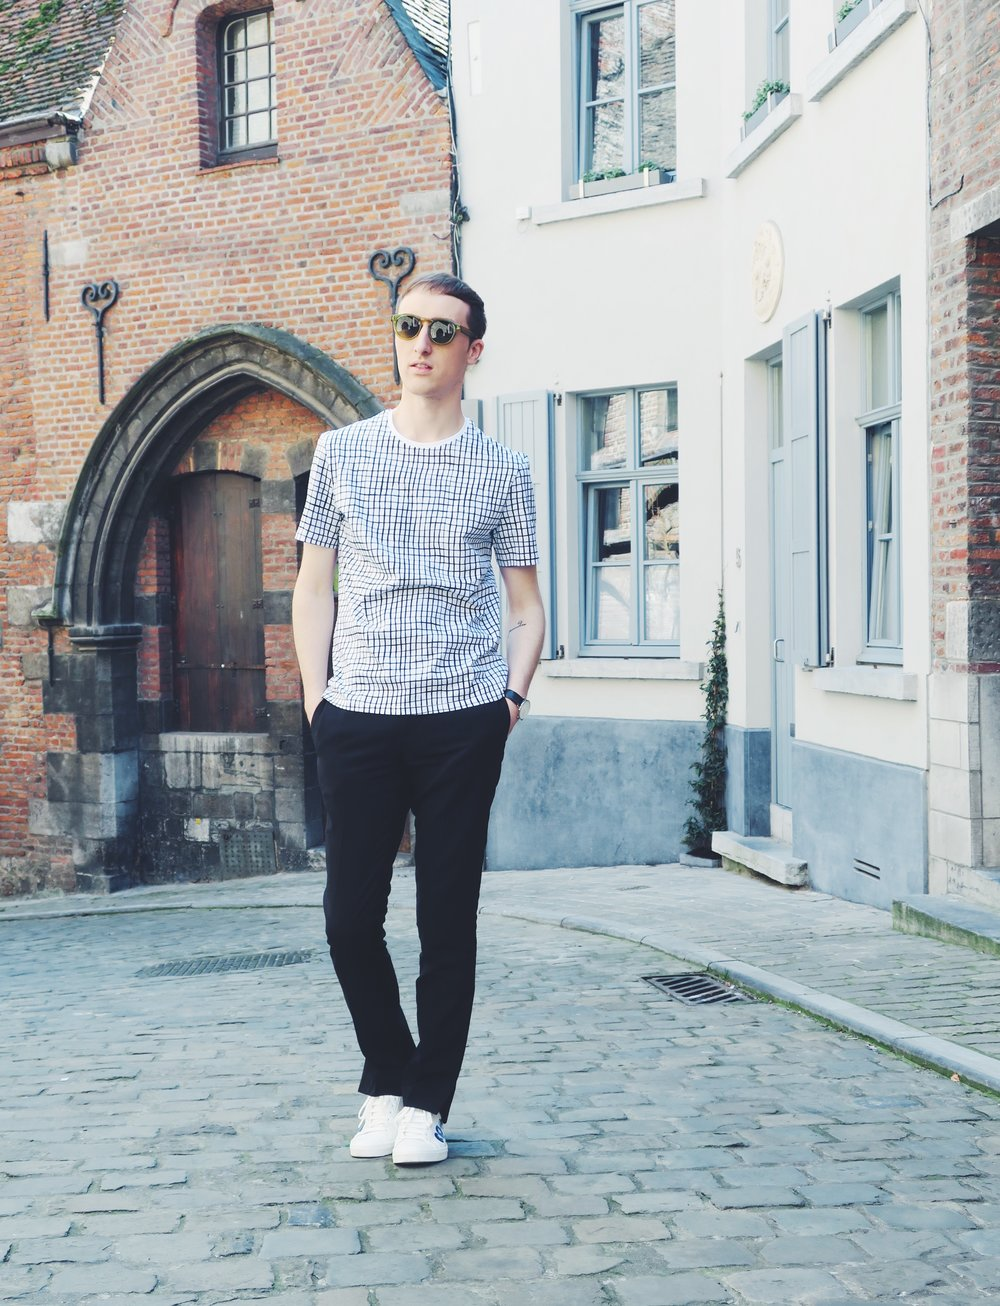 Cos t-shirt - H&M Studio trousers - Zara sneakers - Komono sunglasses